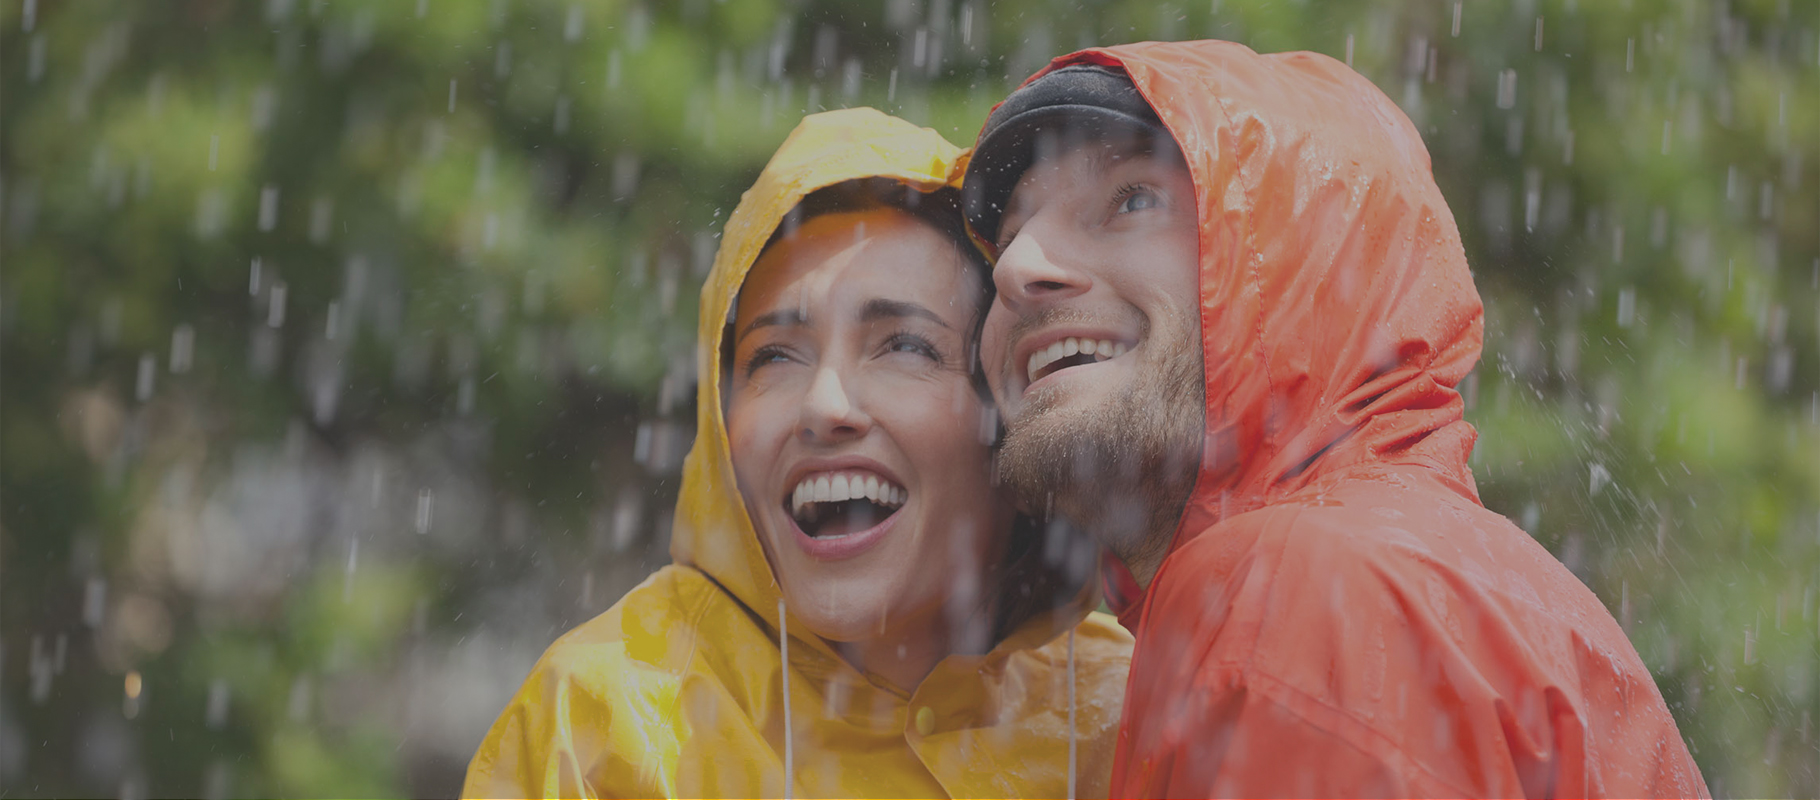 <br><br><span>Dr Waterproofs</span>your safety guardian.